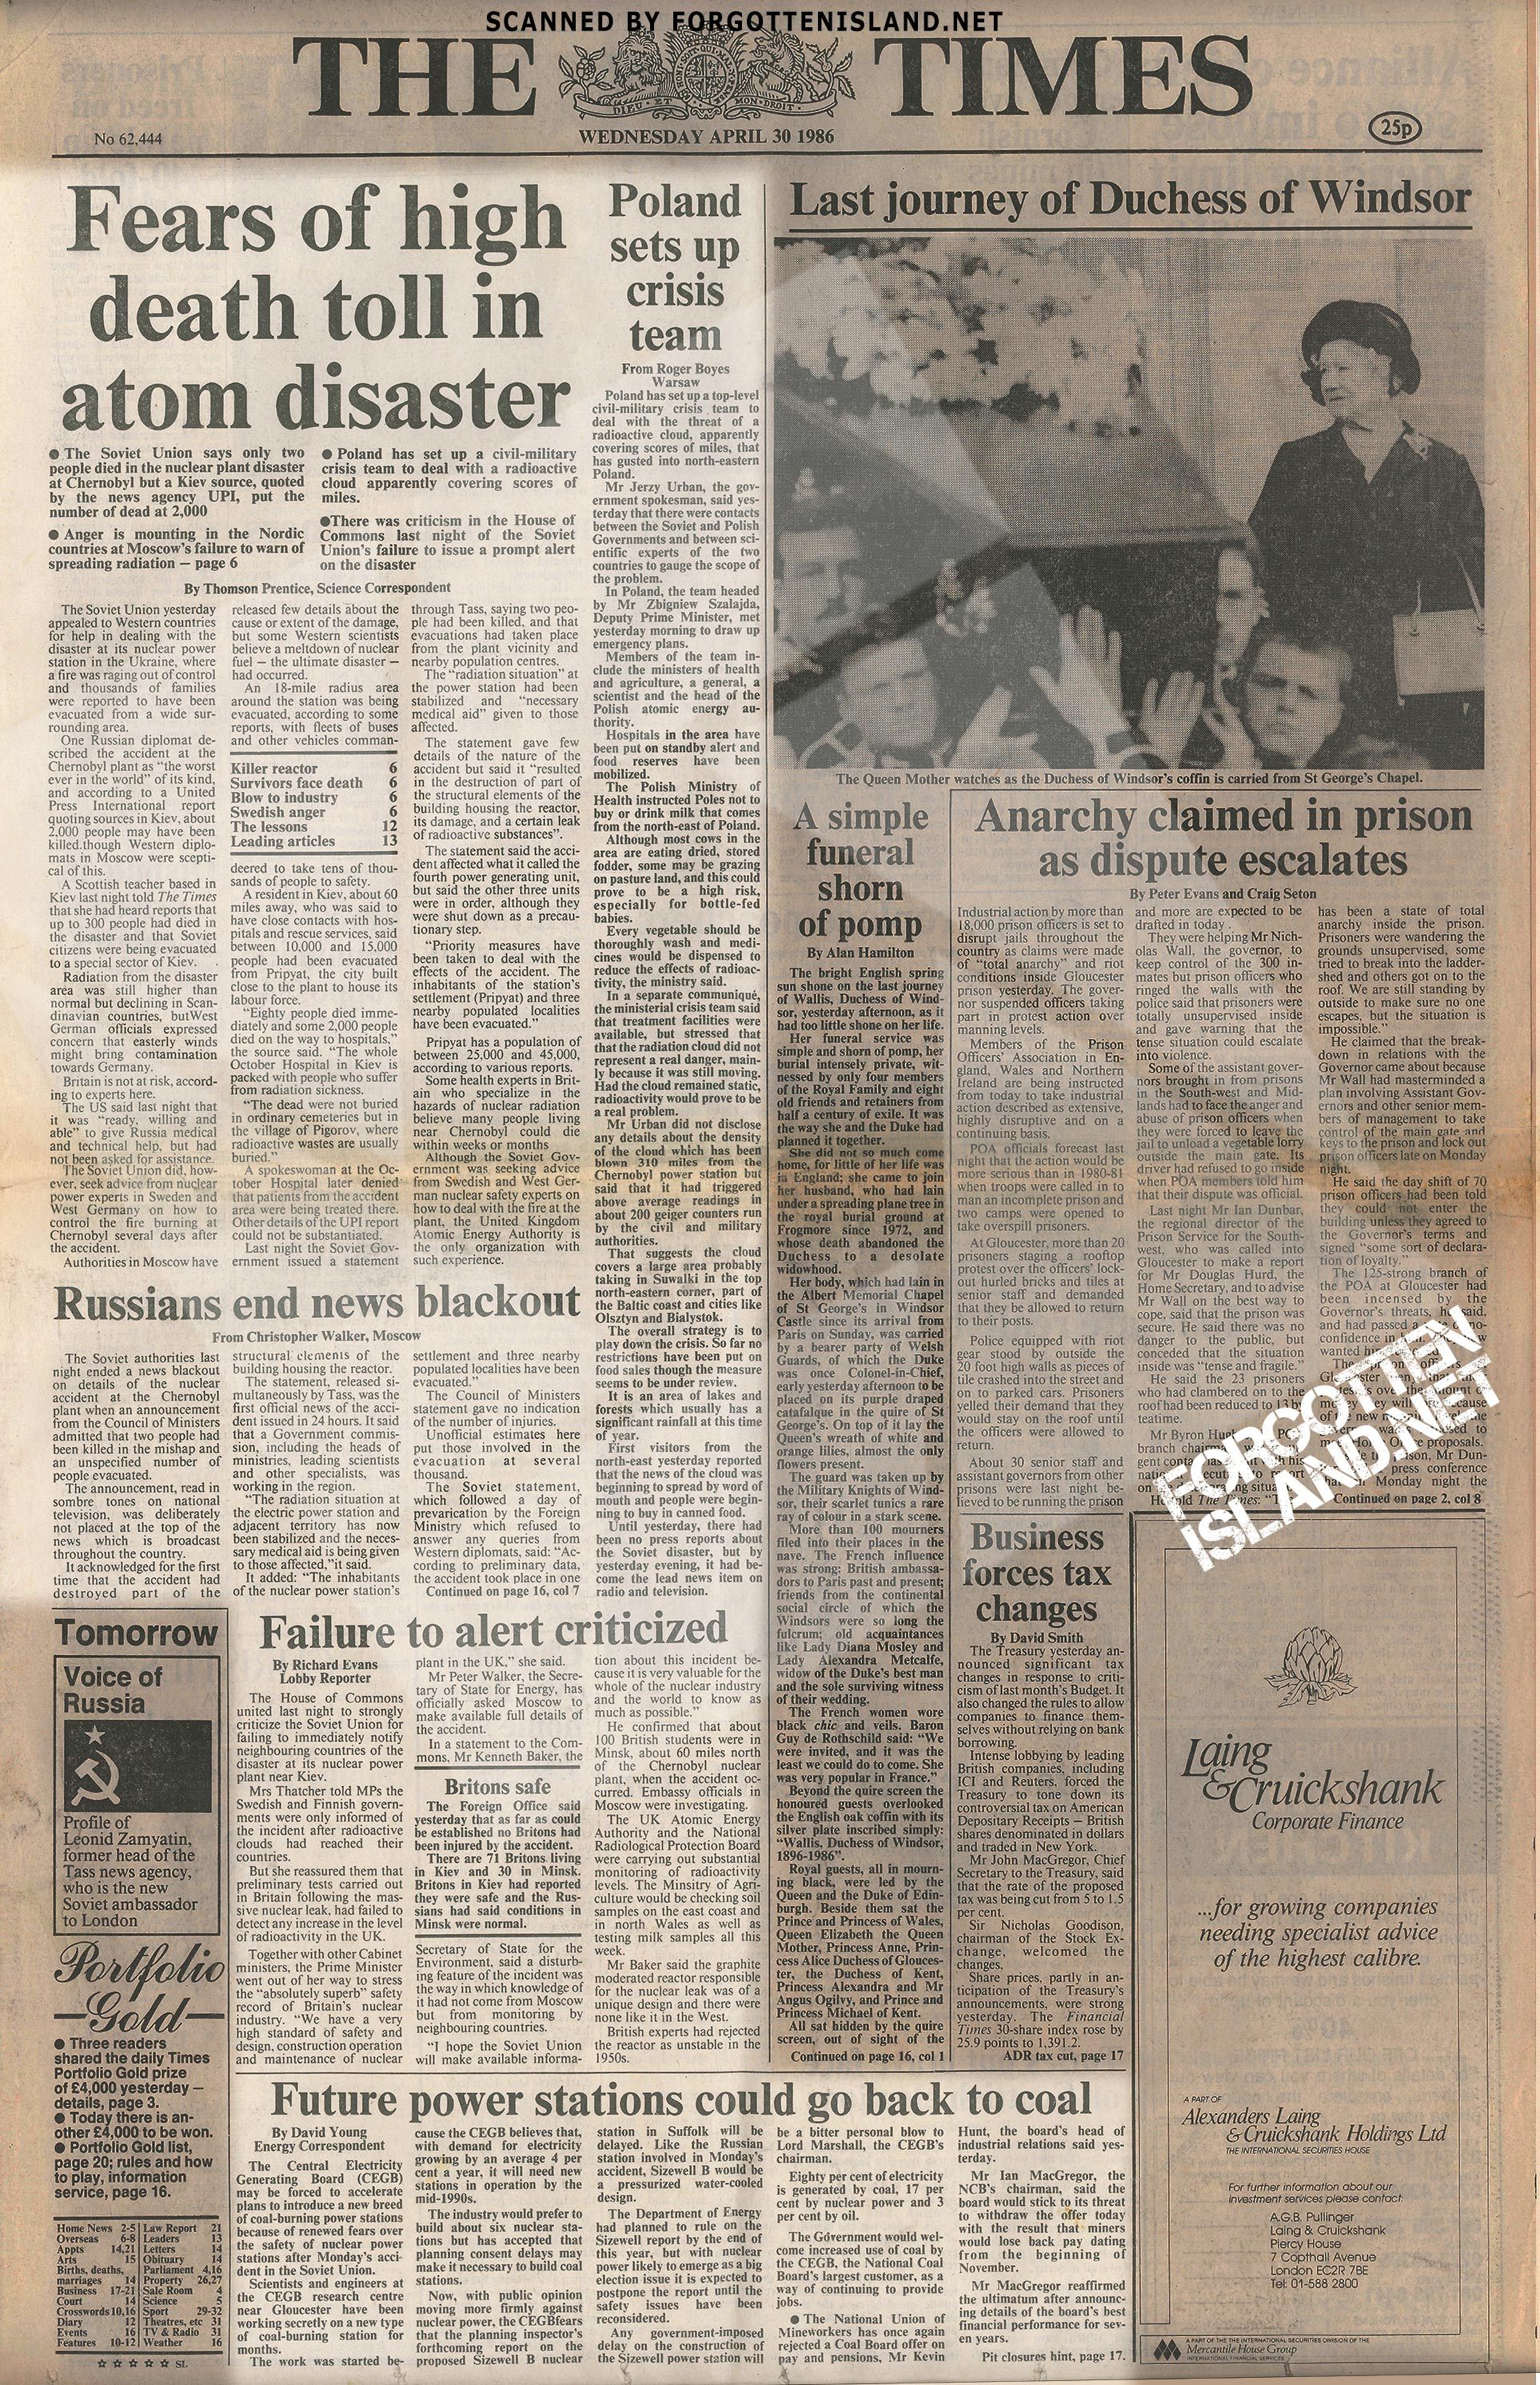 Chernobyl Newspaper - The Times 30 April 1986